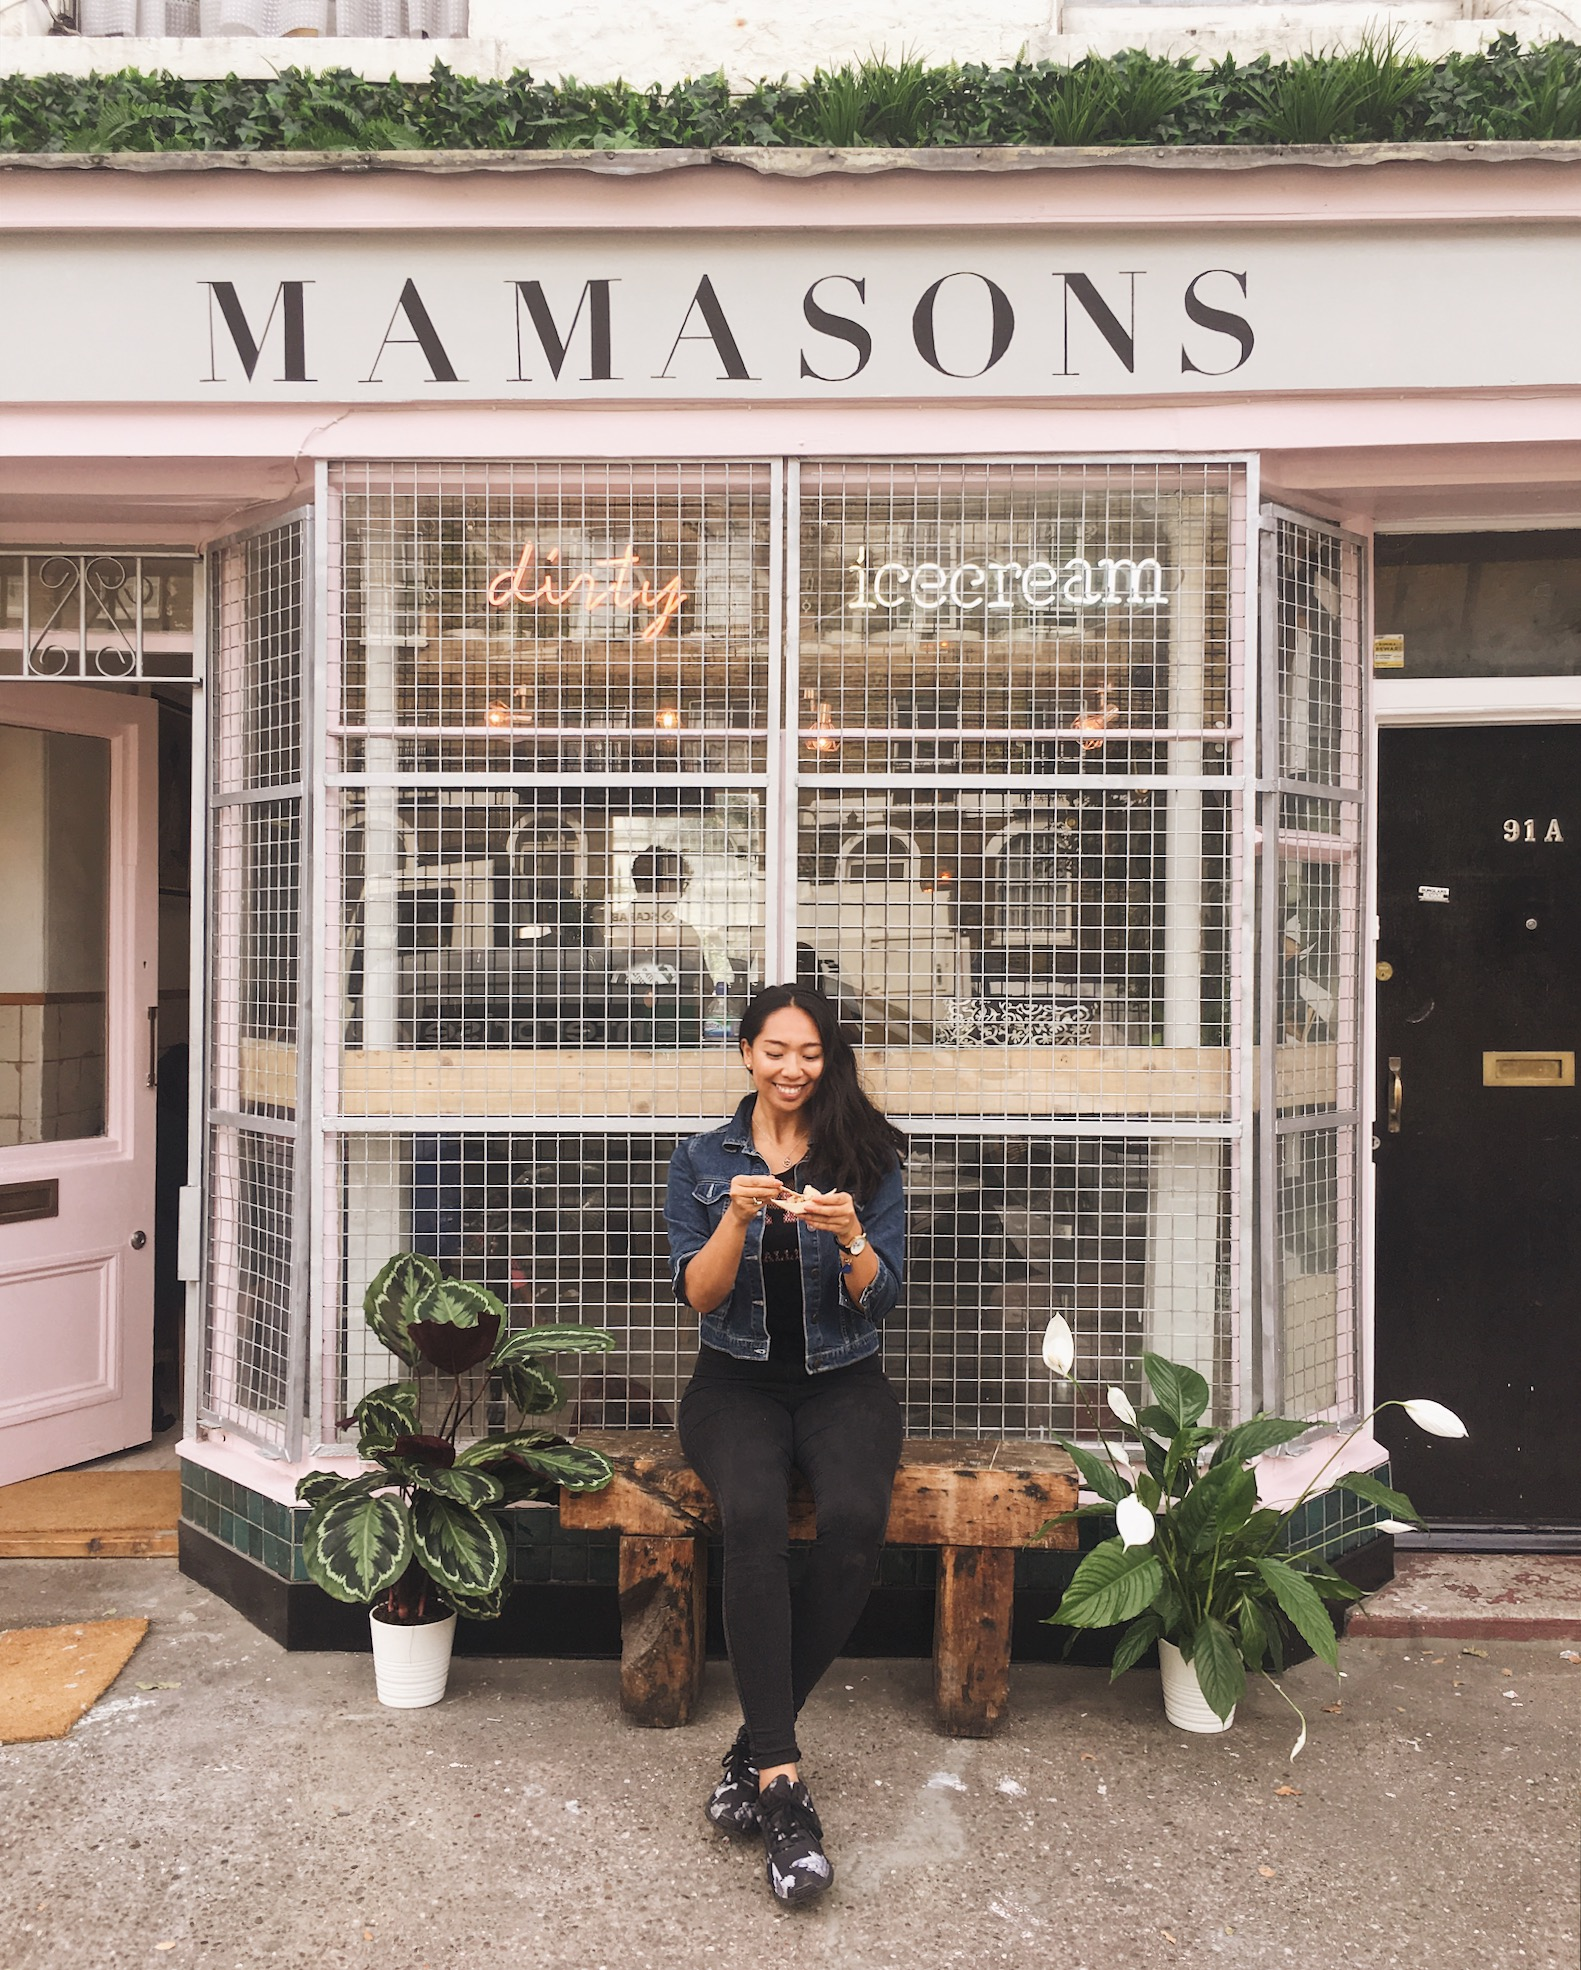 Mamasons Filipino Dirty Ice Cream in Camden/Kentish Town, London -   illumelation  .  com